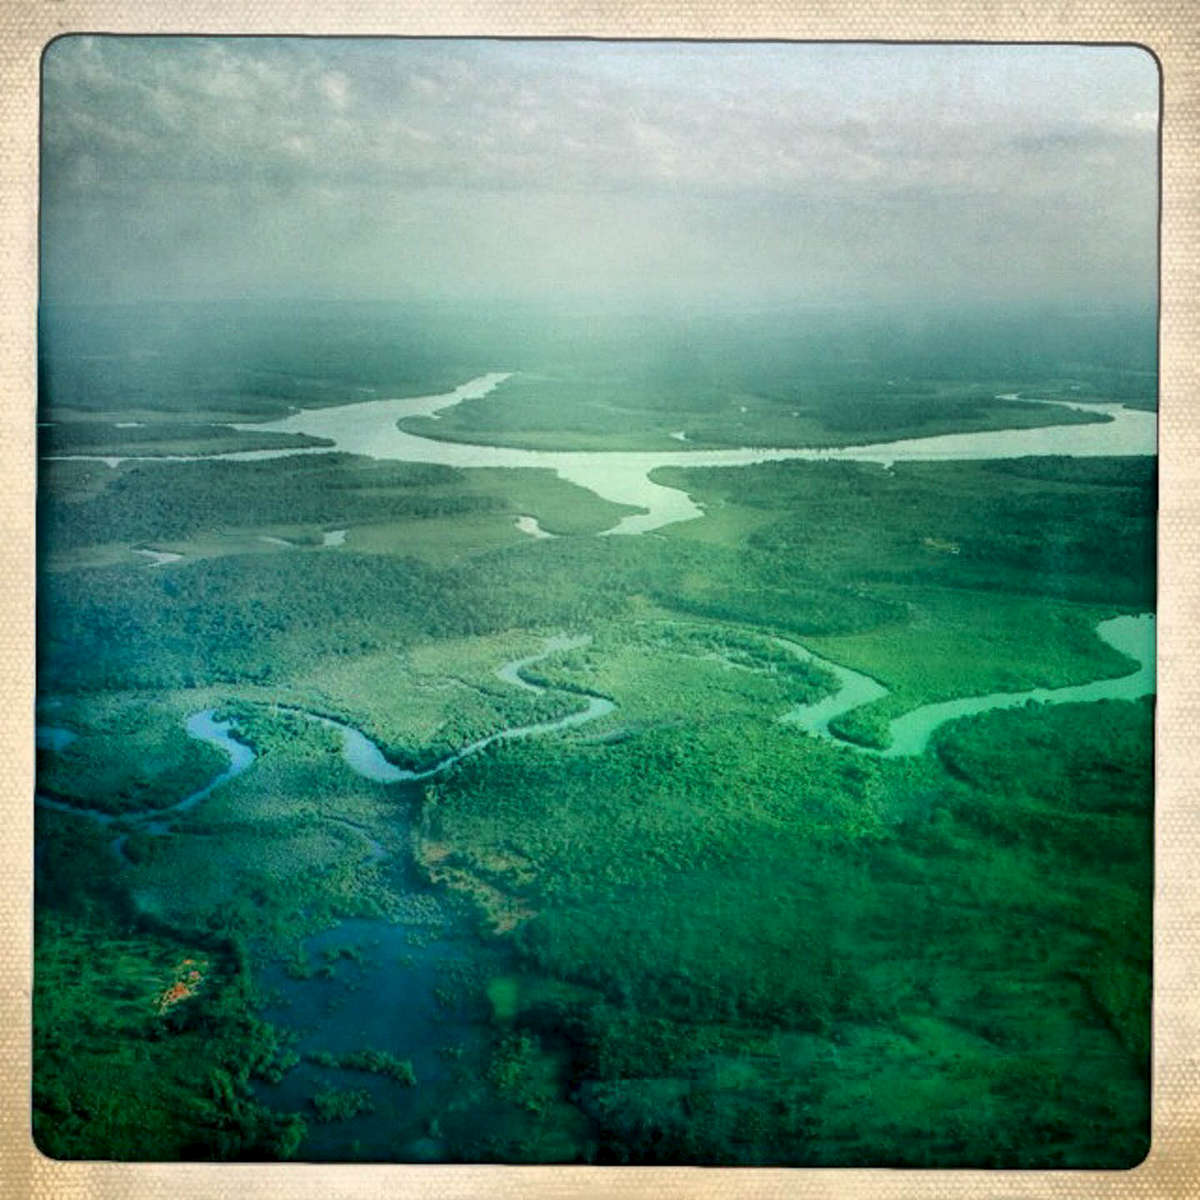 Flying above Sierra Leone. November 2012.